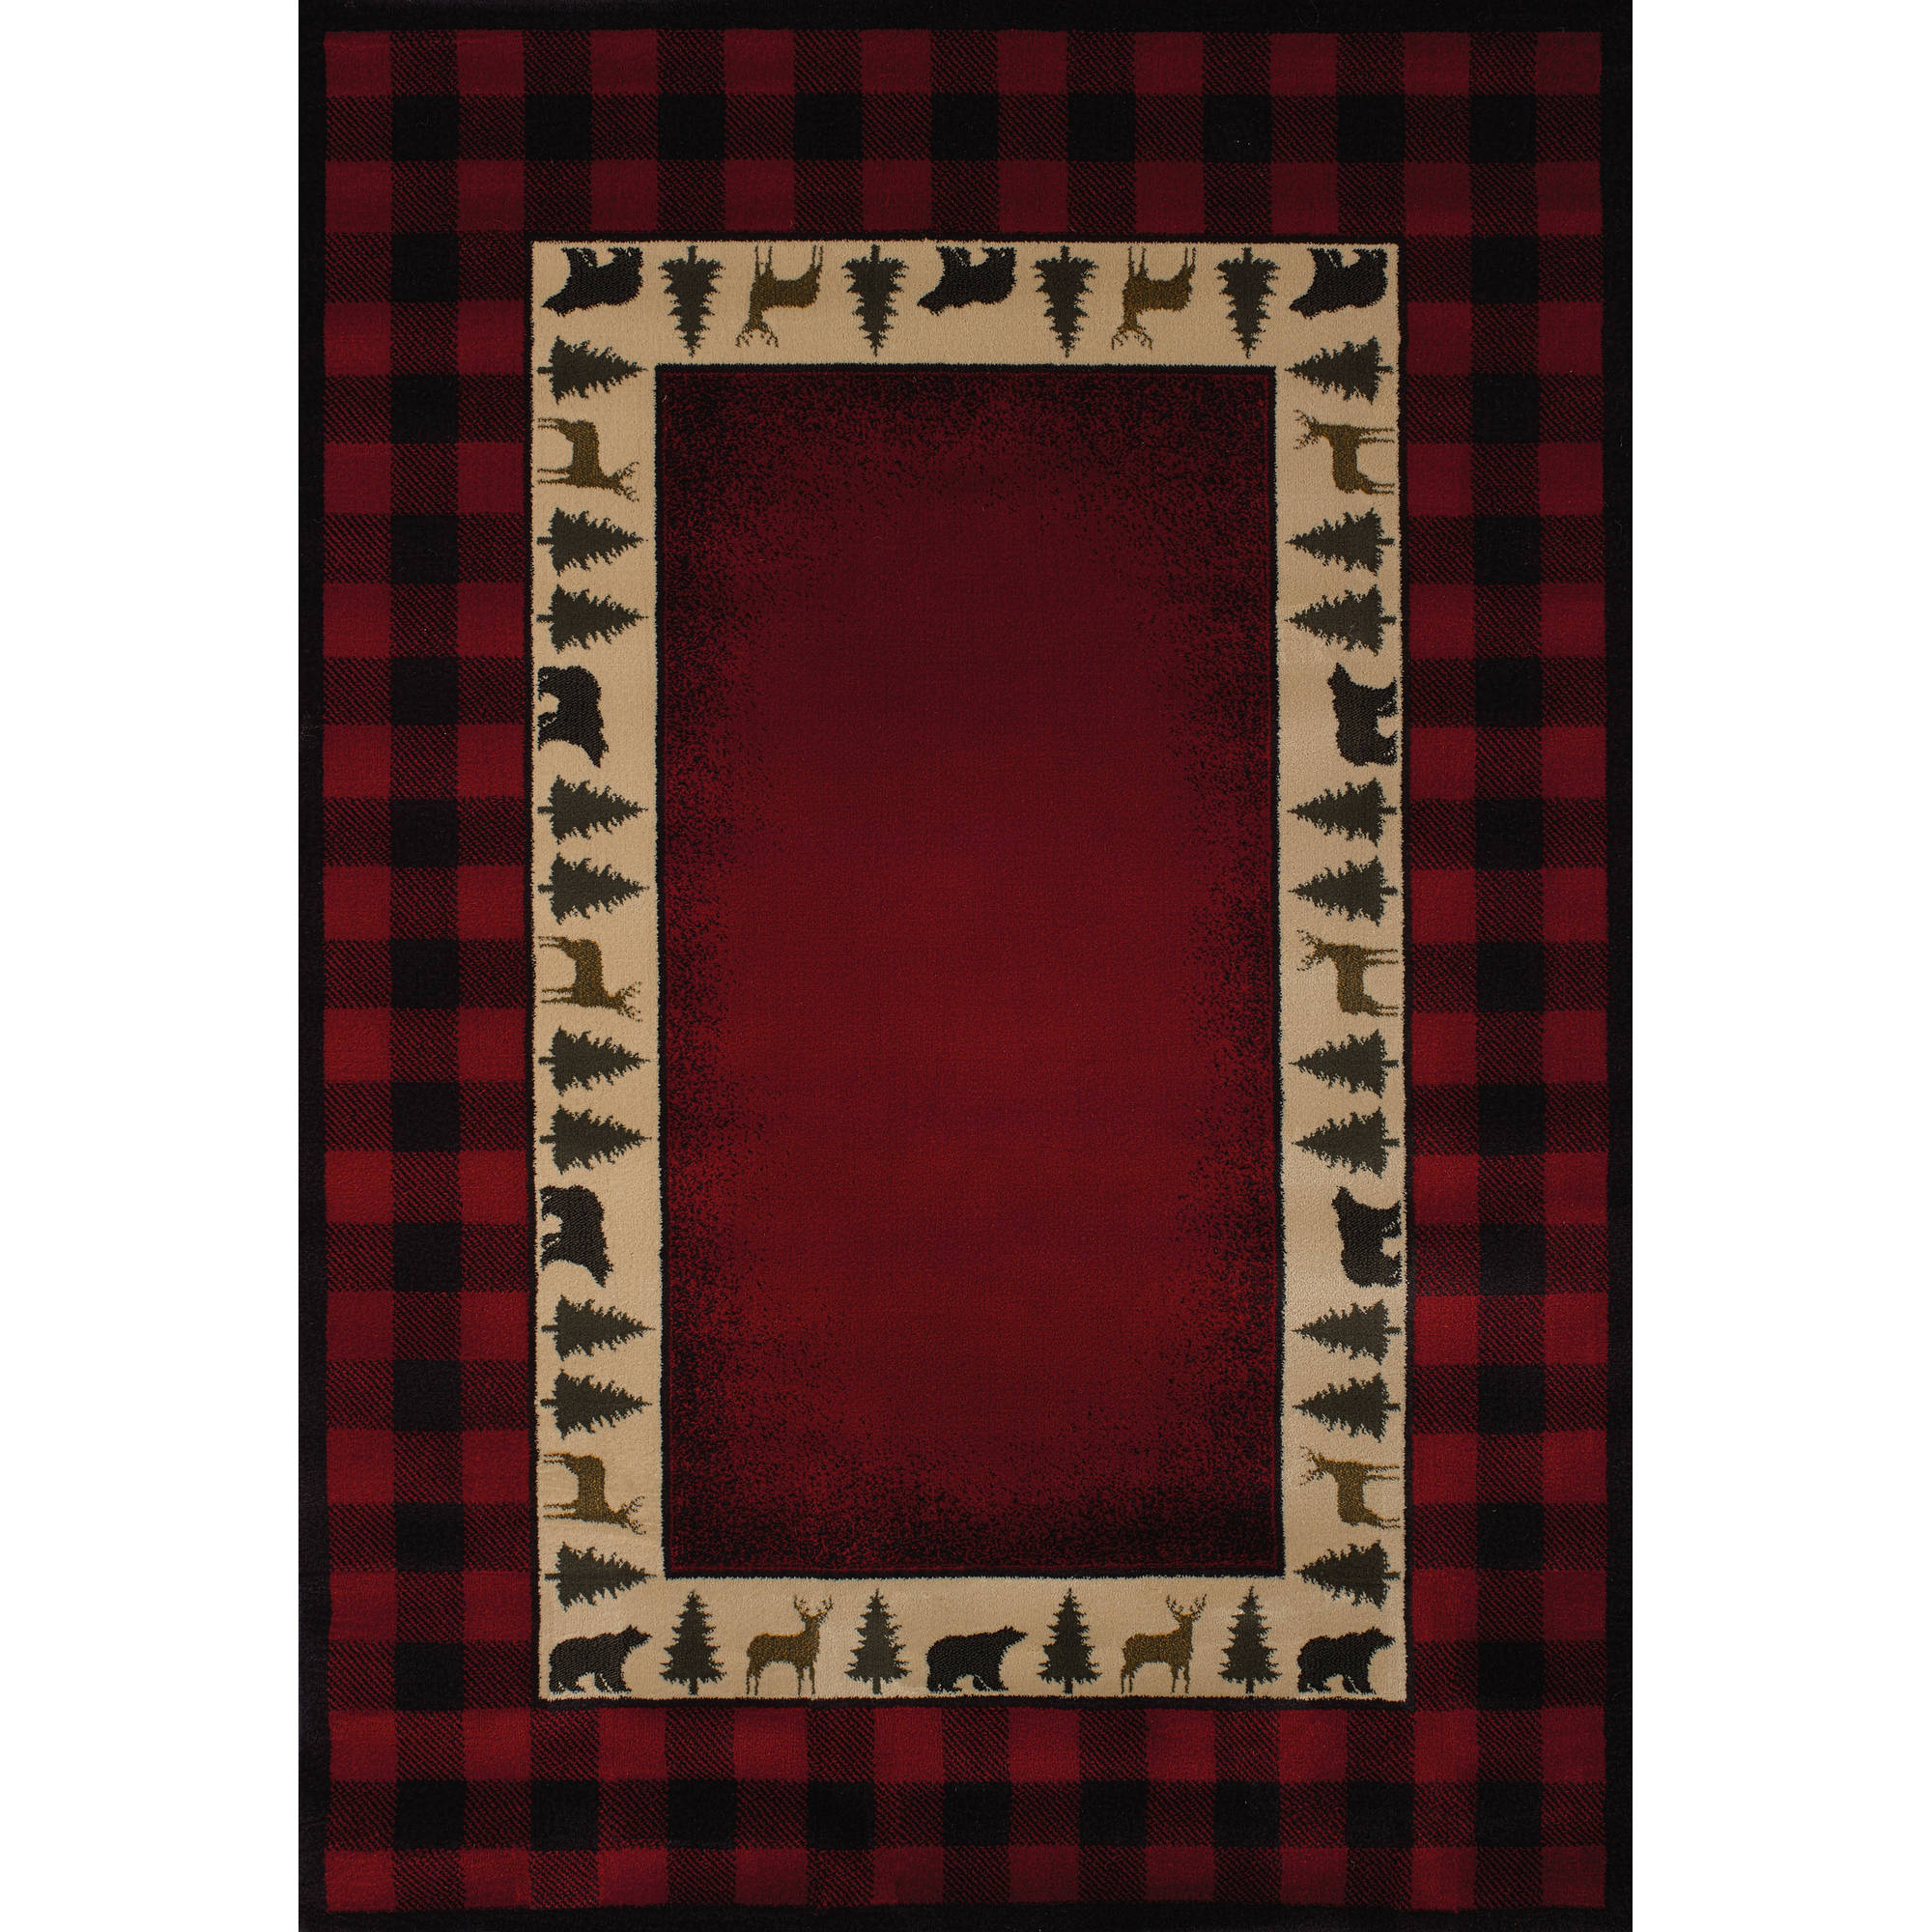 United Weavers Big Timber Buffalo Plaid Red Woven Polypropylene Area Rug or Runner